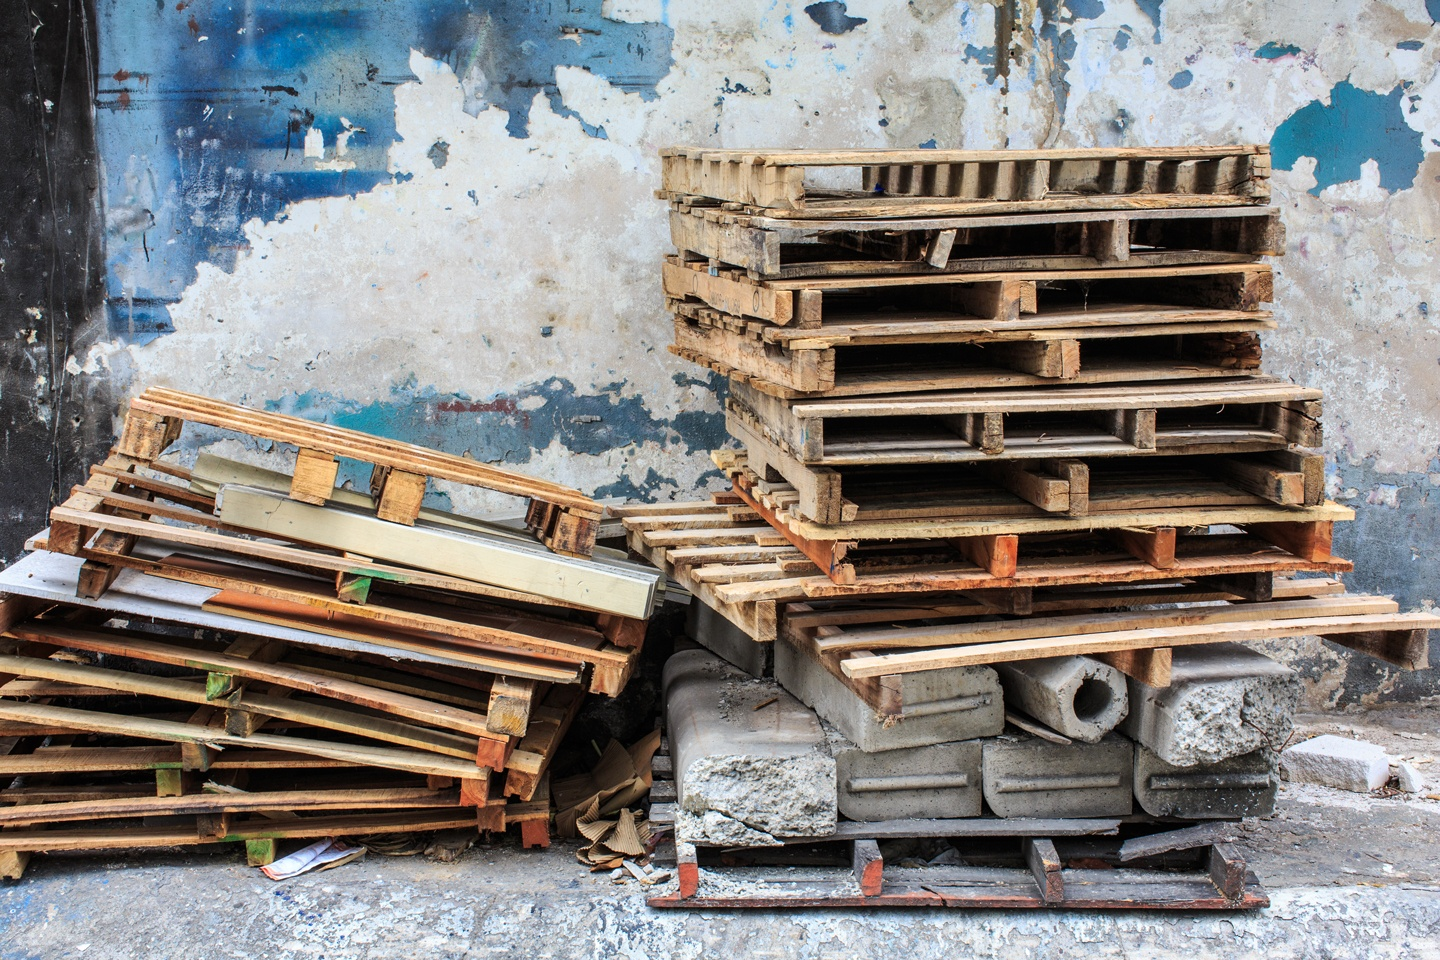 Damaged pallets sitting in a pile.